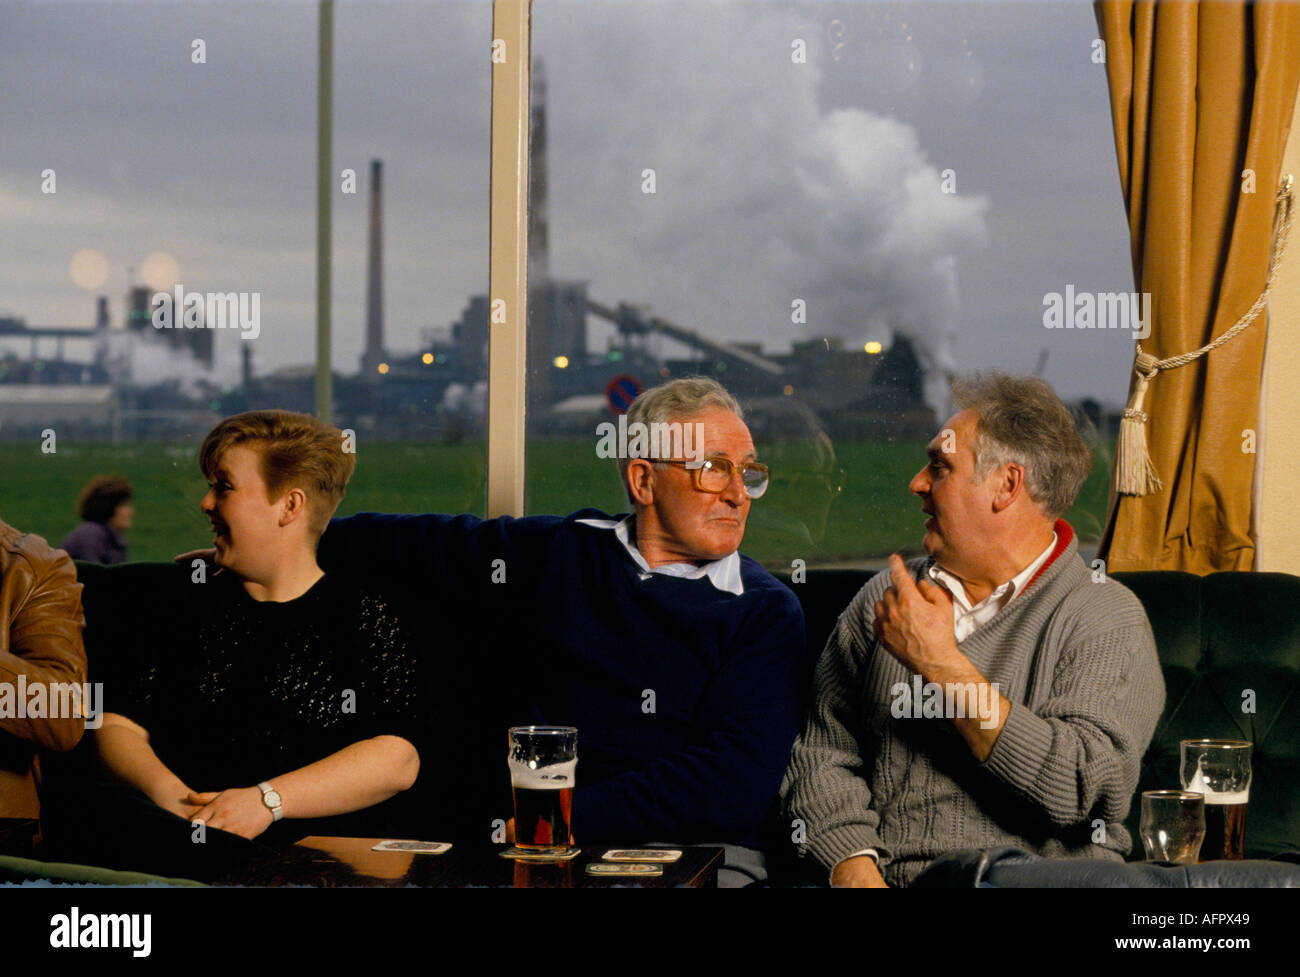 Industrial pollution. MONKTON COKING PLANT CLUB. Works club members  drink  and relax in the shaddow of the power plant.  1990s HOMER SYKES - Stock Image